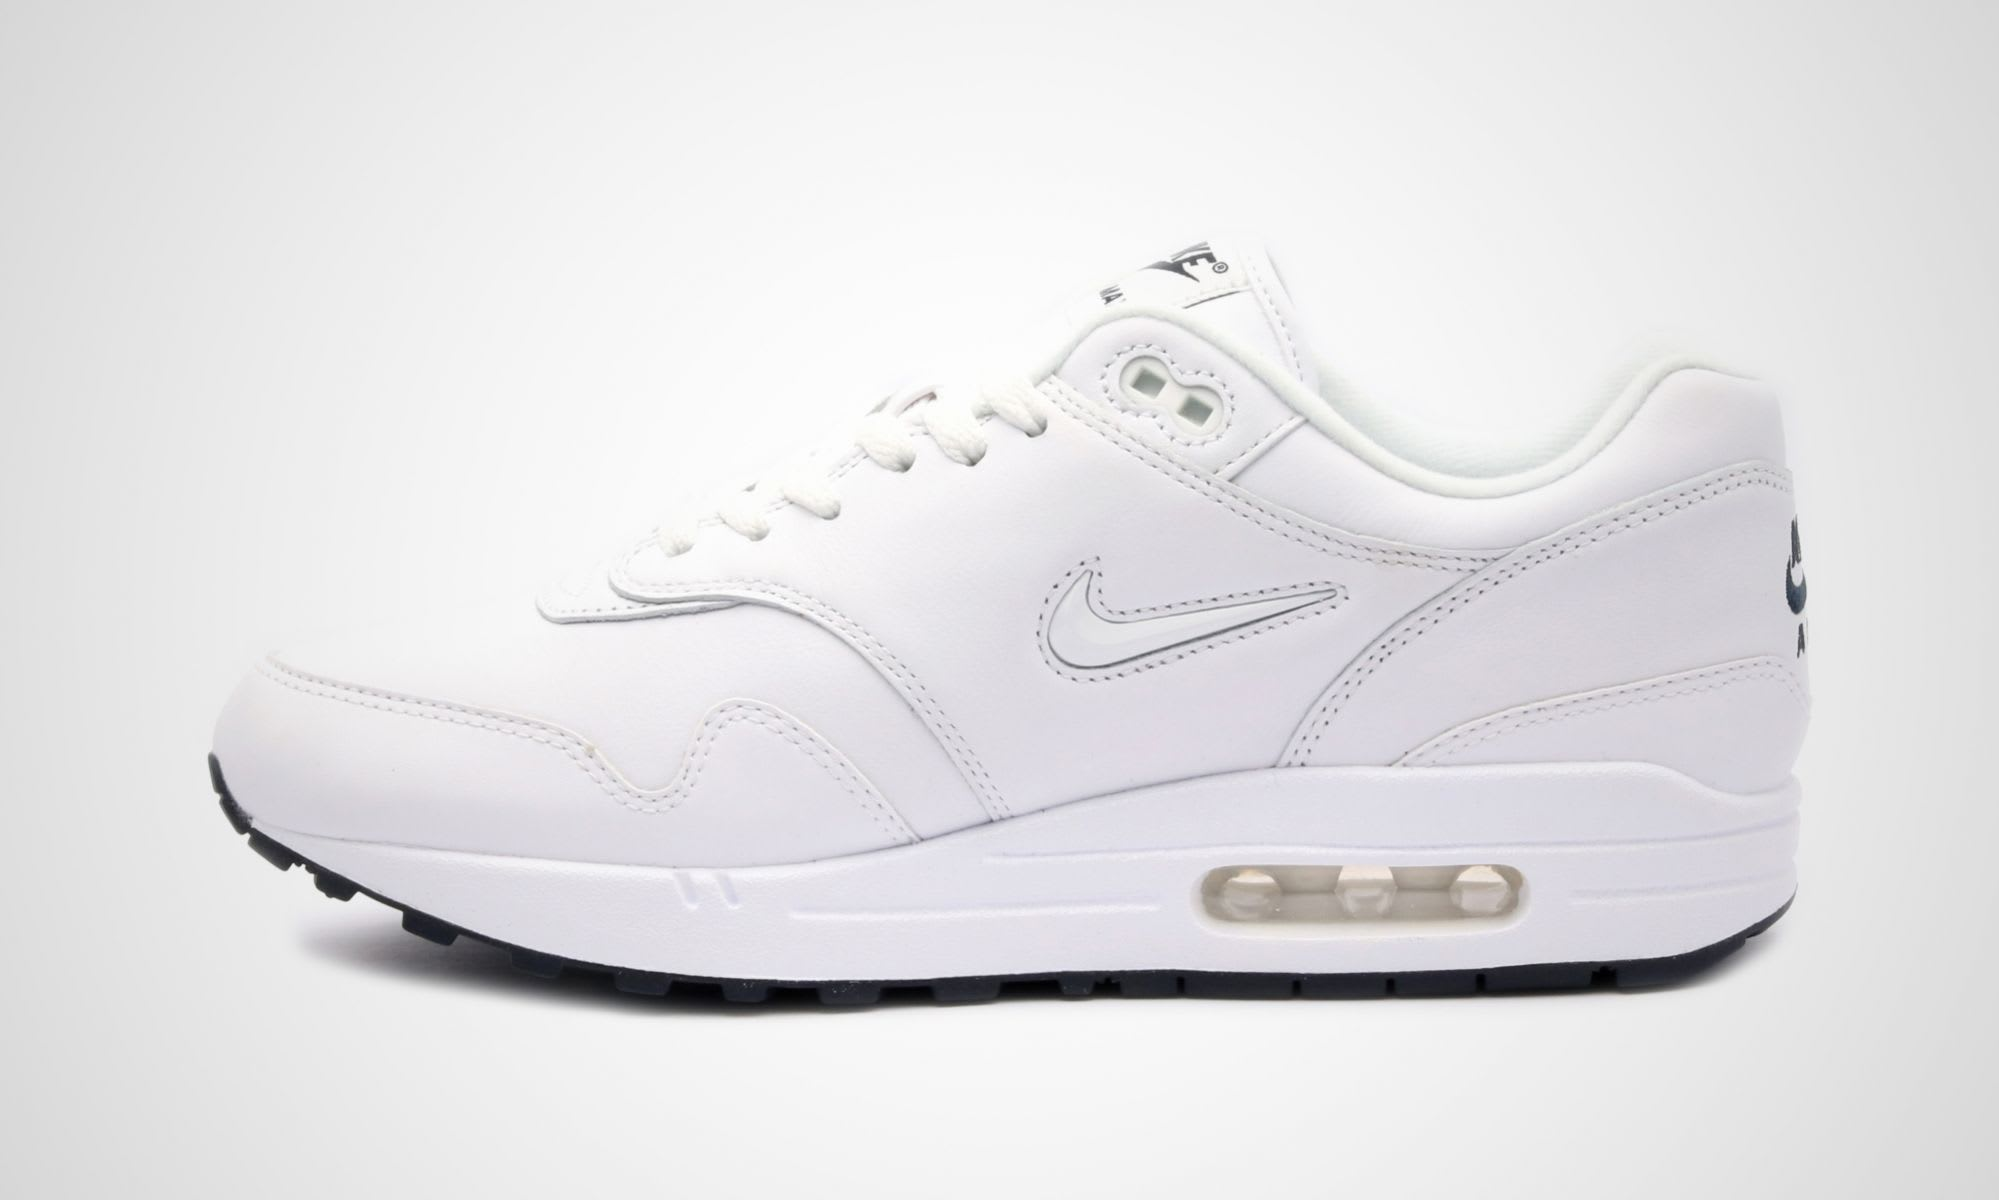 Nike Air Max 1 SC Jewel White Release Date Medial 918354-105